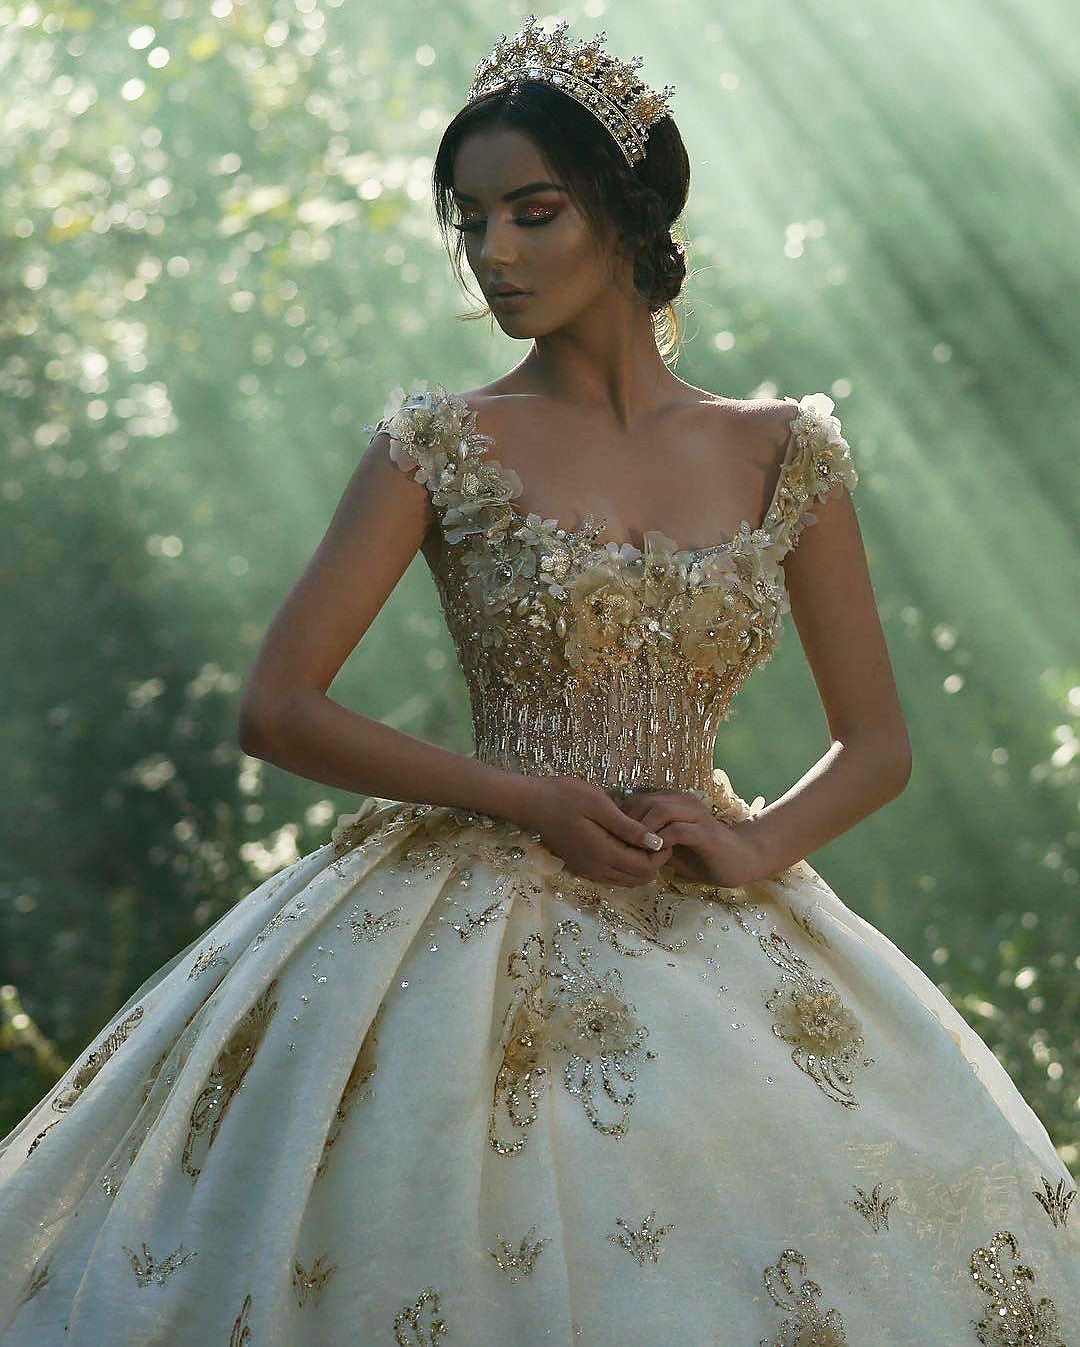 gold gown   Tumblr   Rosier   Pinterest   Gold gown, Gowns and Robe